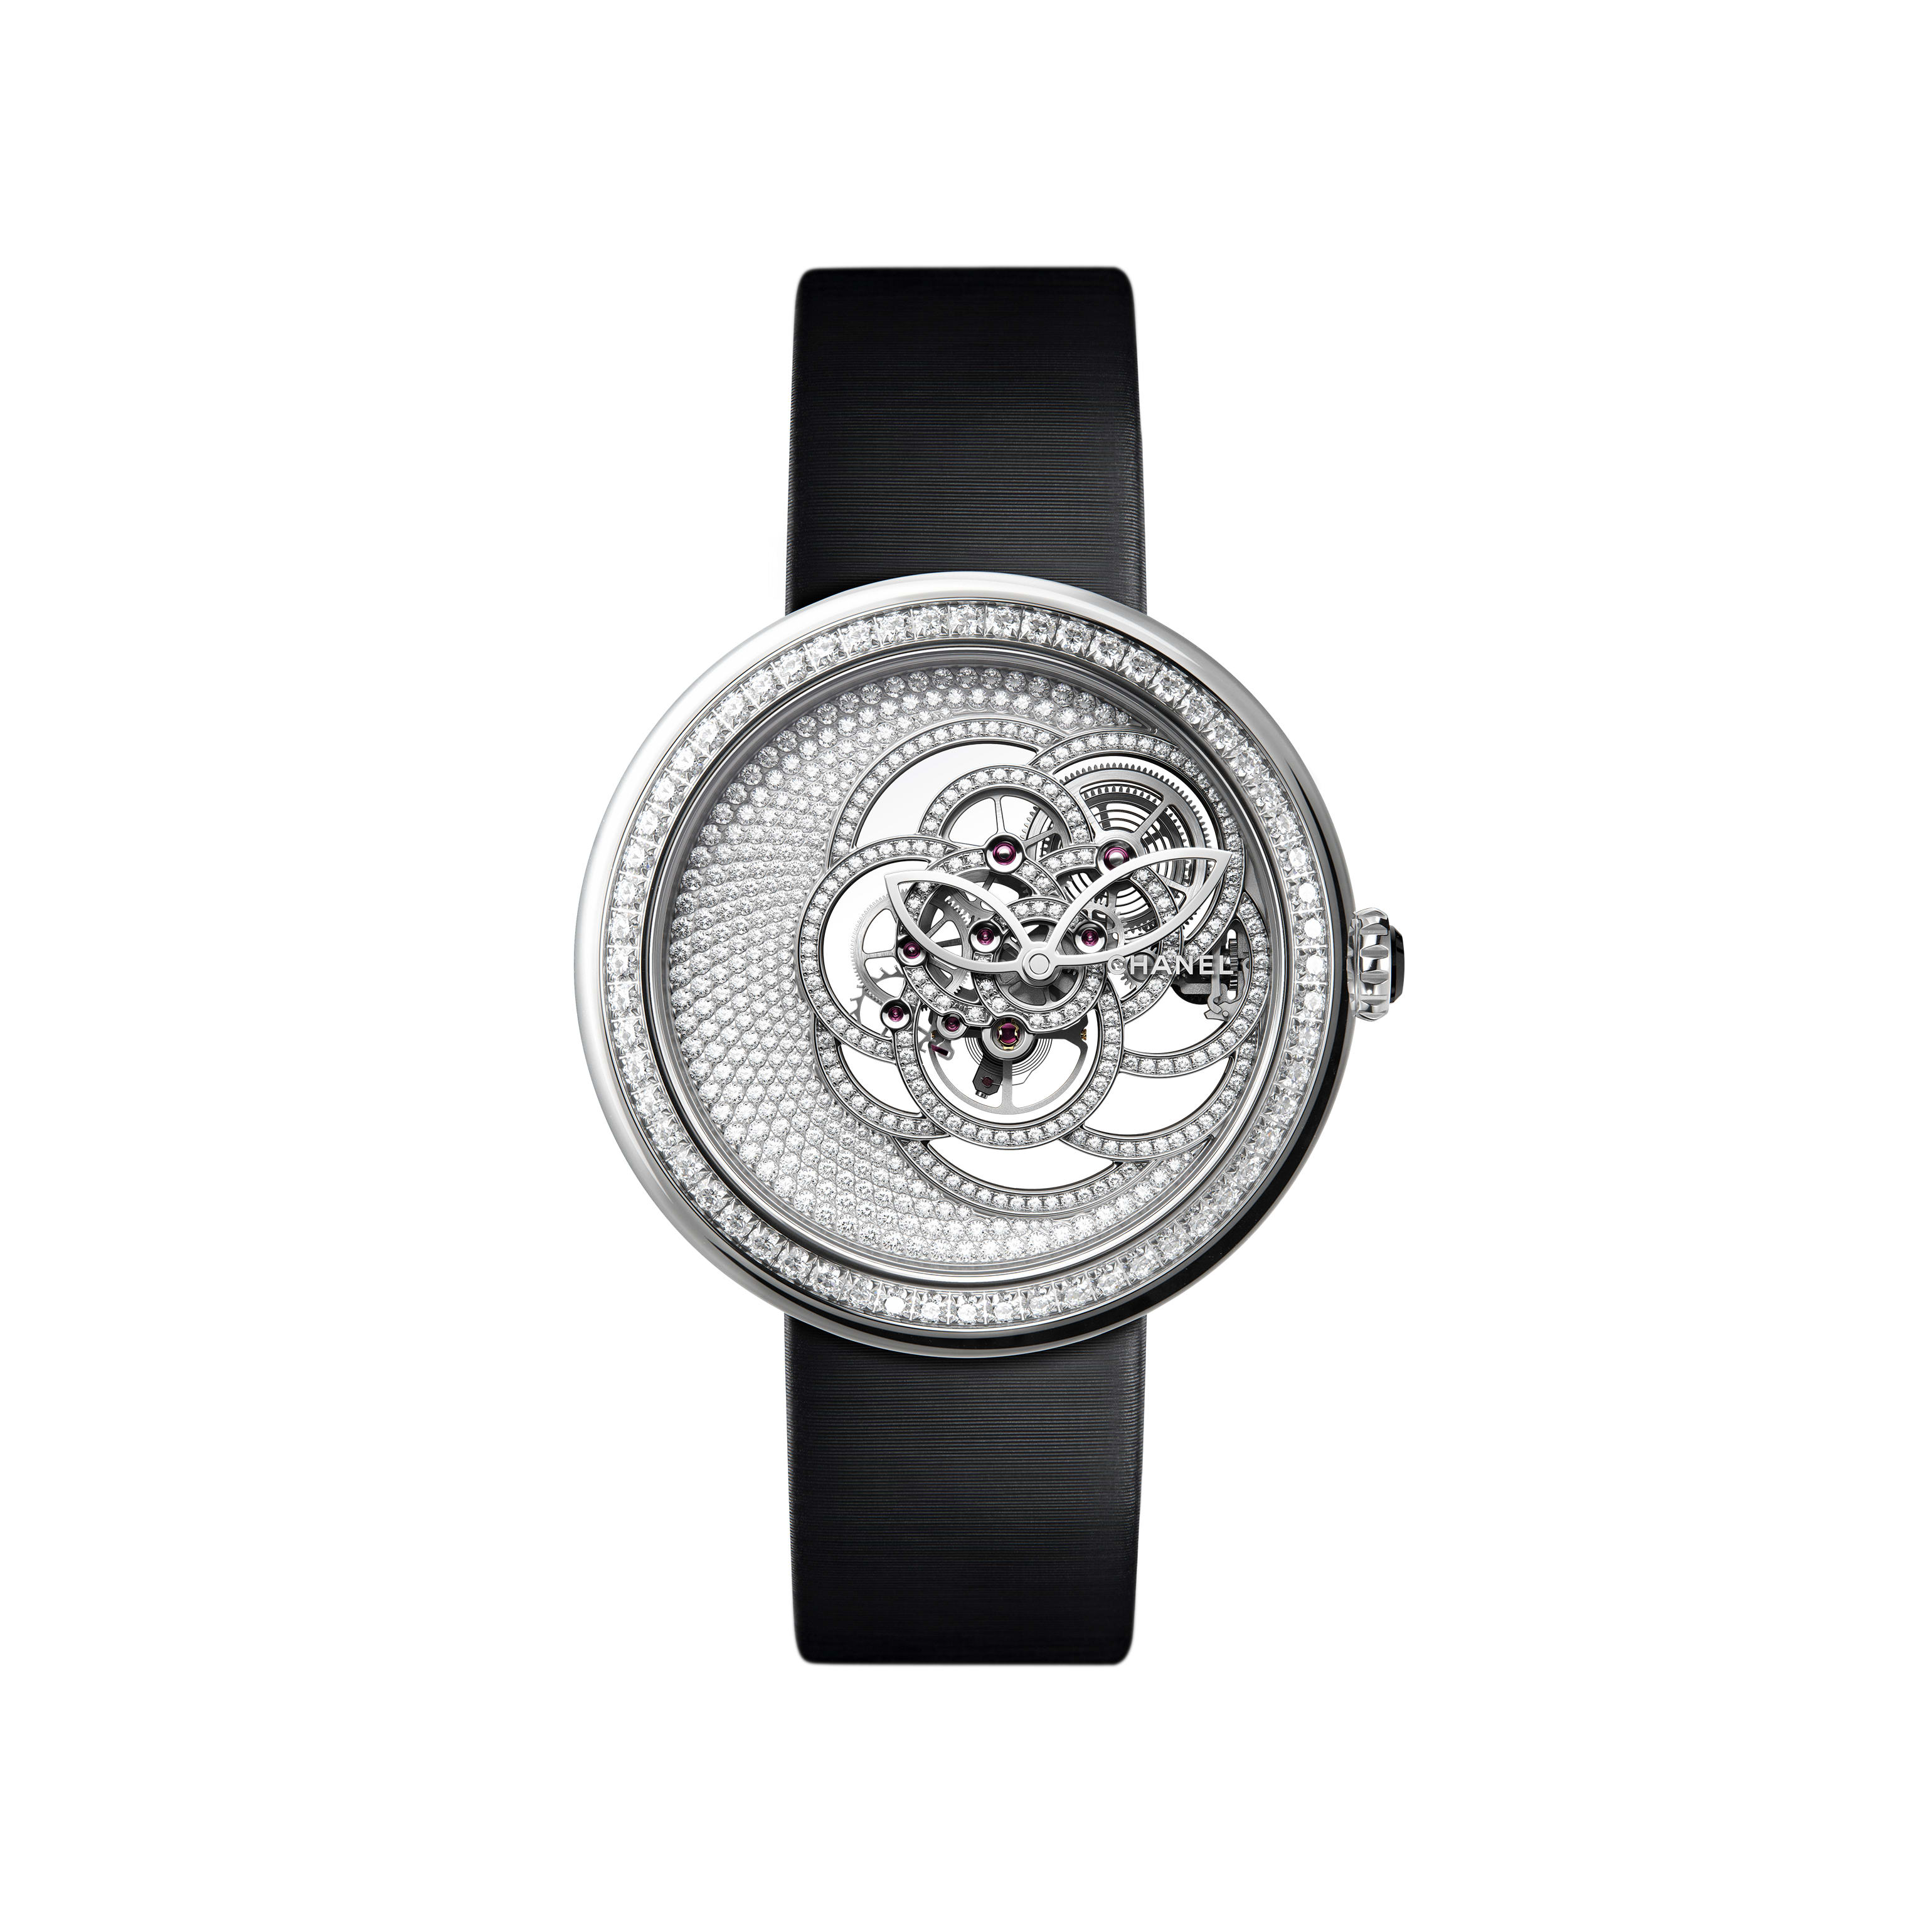 Chanel Mademoiselle Prive Camelia with a fully paved dial